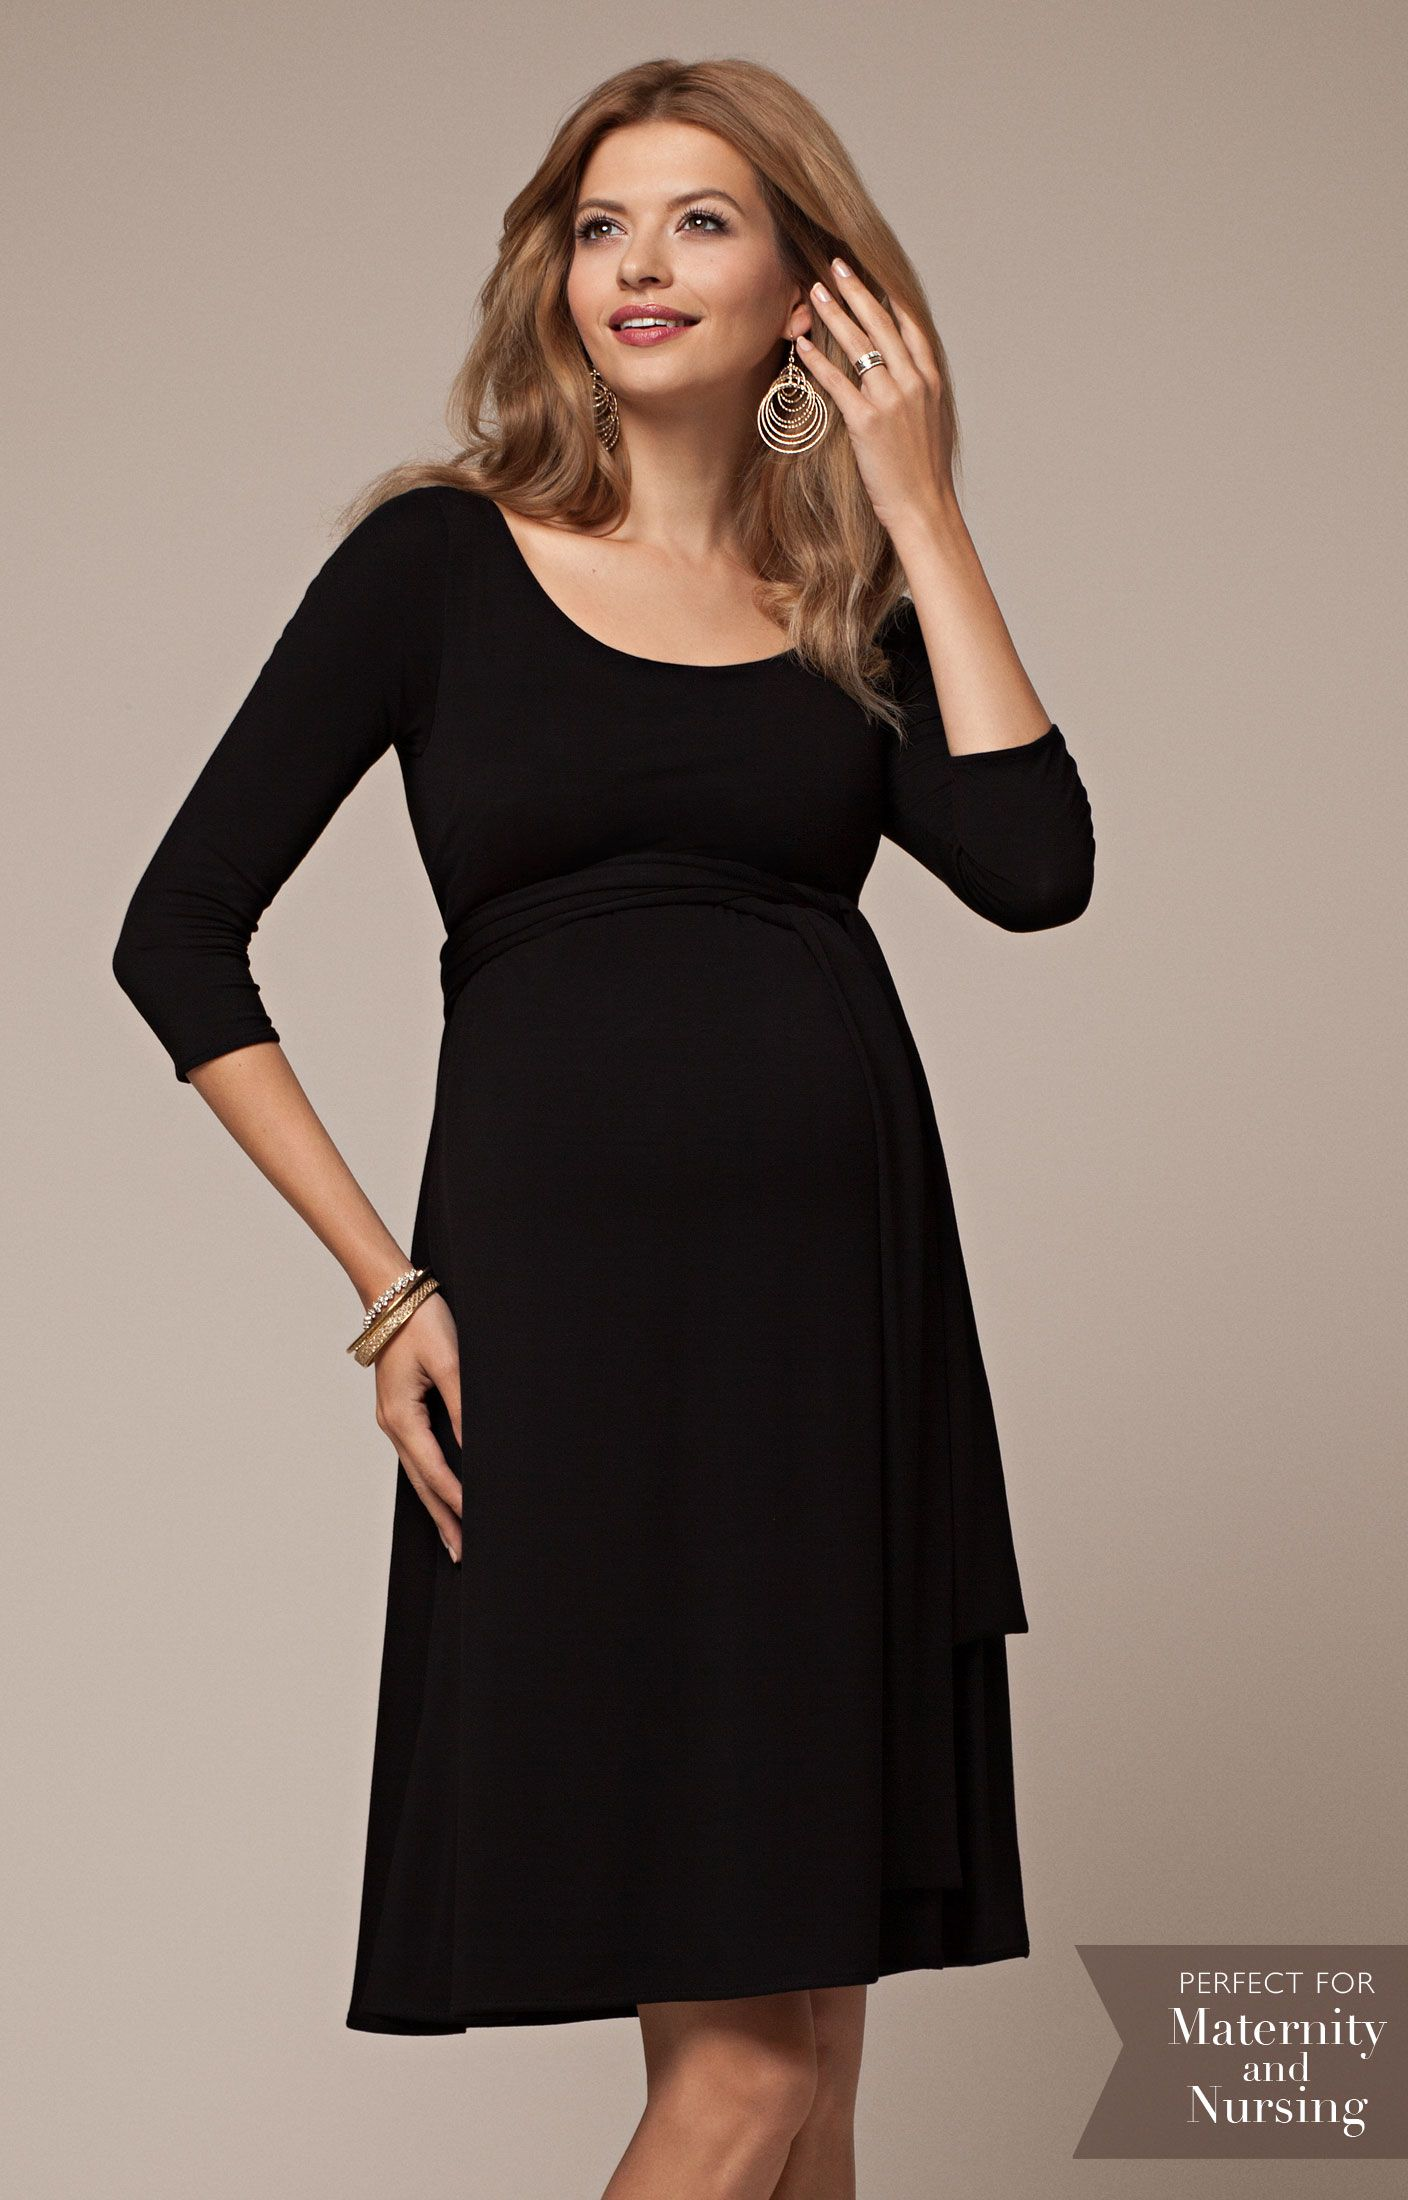 e8b1c430c0 Feeding can be both chic and convenient with our Naomi Nursing Dress in  classic Black.